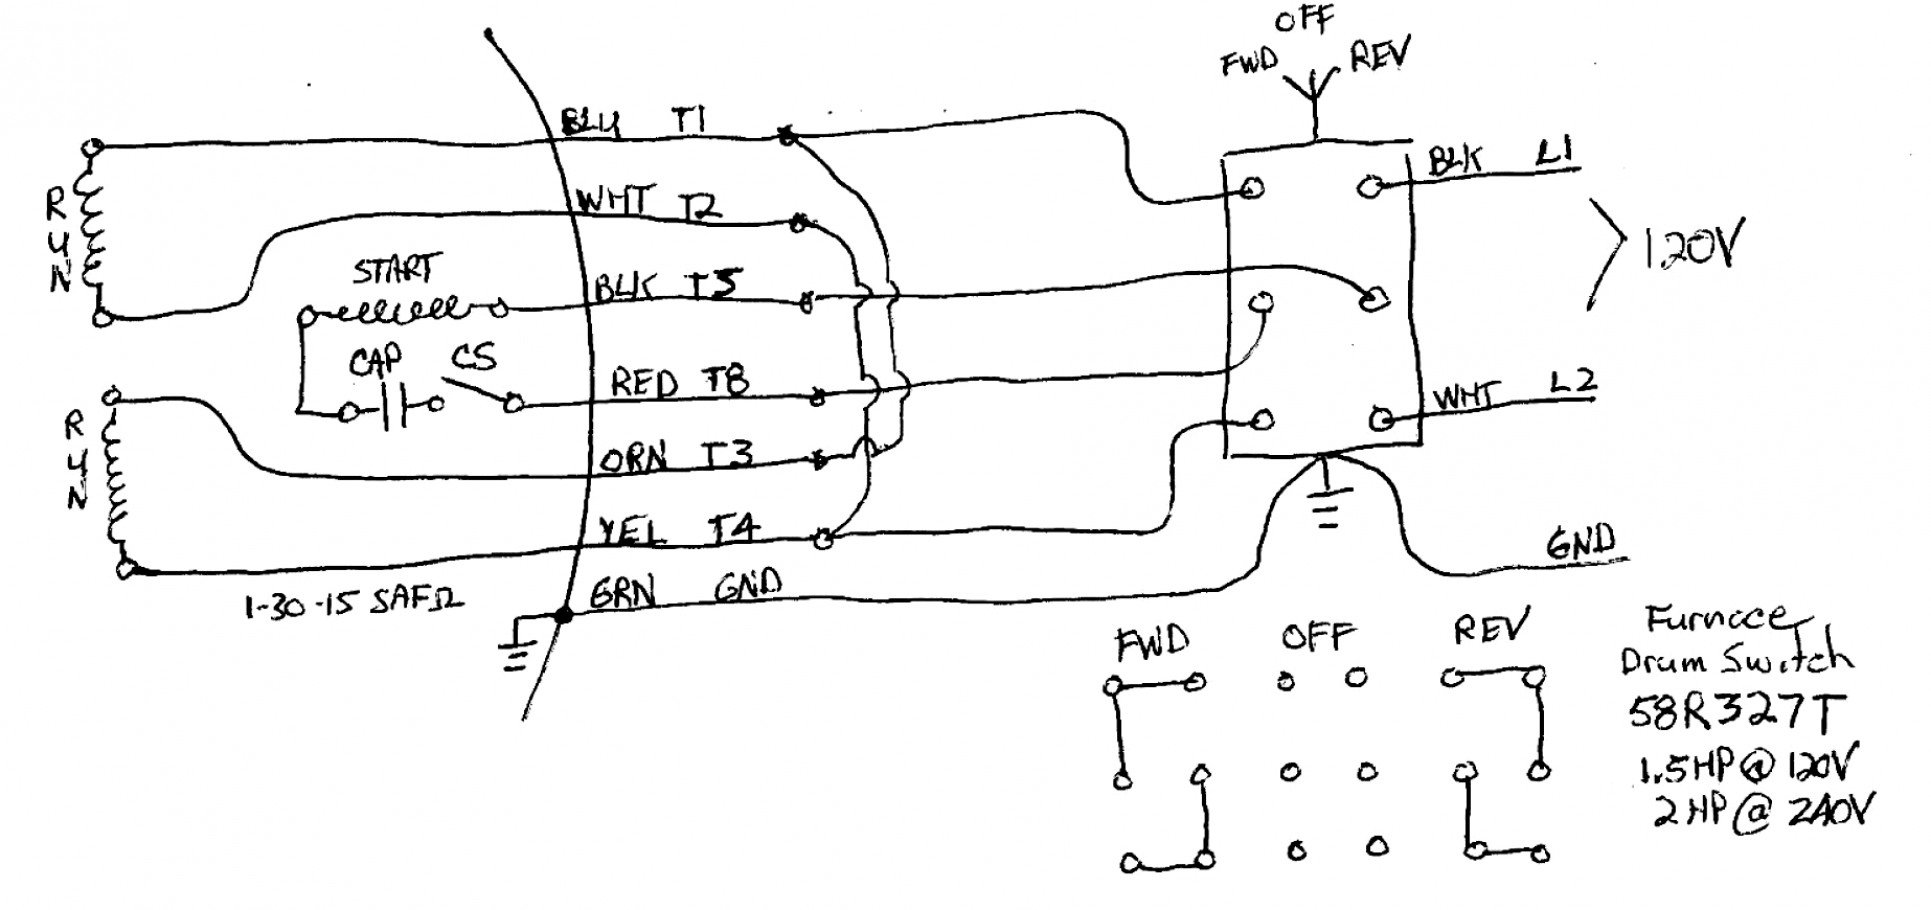 Century Electric Motors Wiring Diagram - All Wiring Diagram Data - Baldor Motors Wiring Diagram